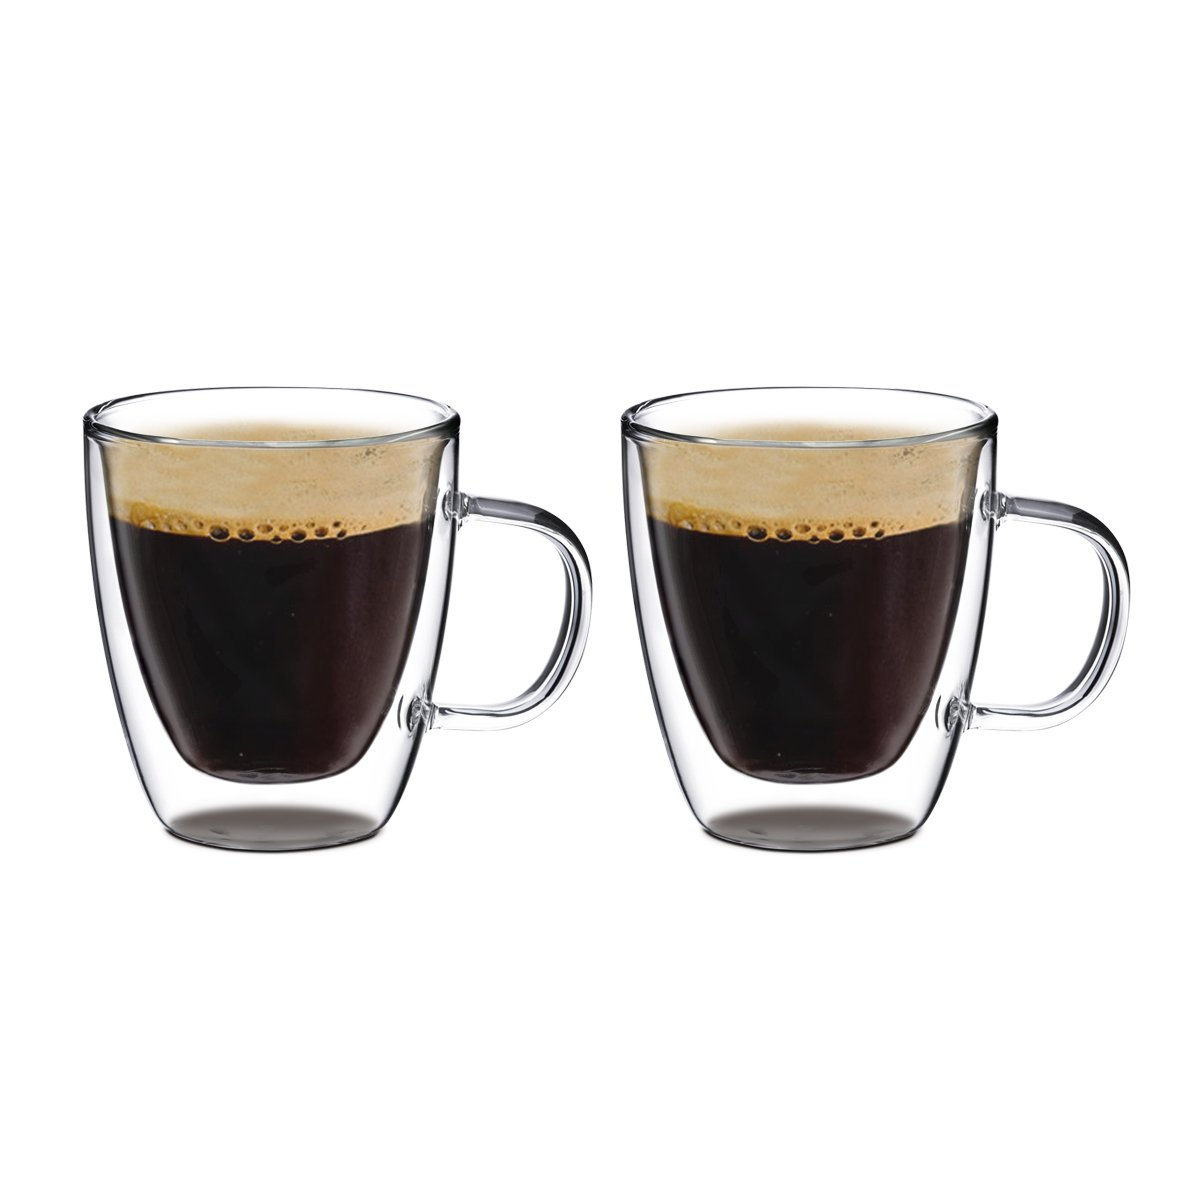 By Bruntmor and More Wine Coffee Beer Double Wall Glass with Handle 8 oz, Set of 2 for Tea